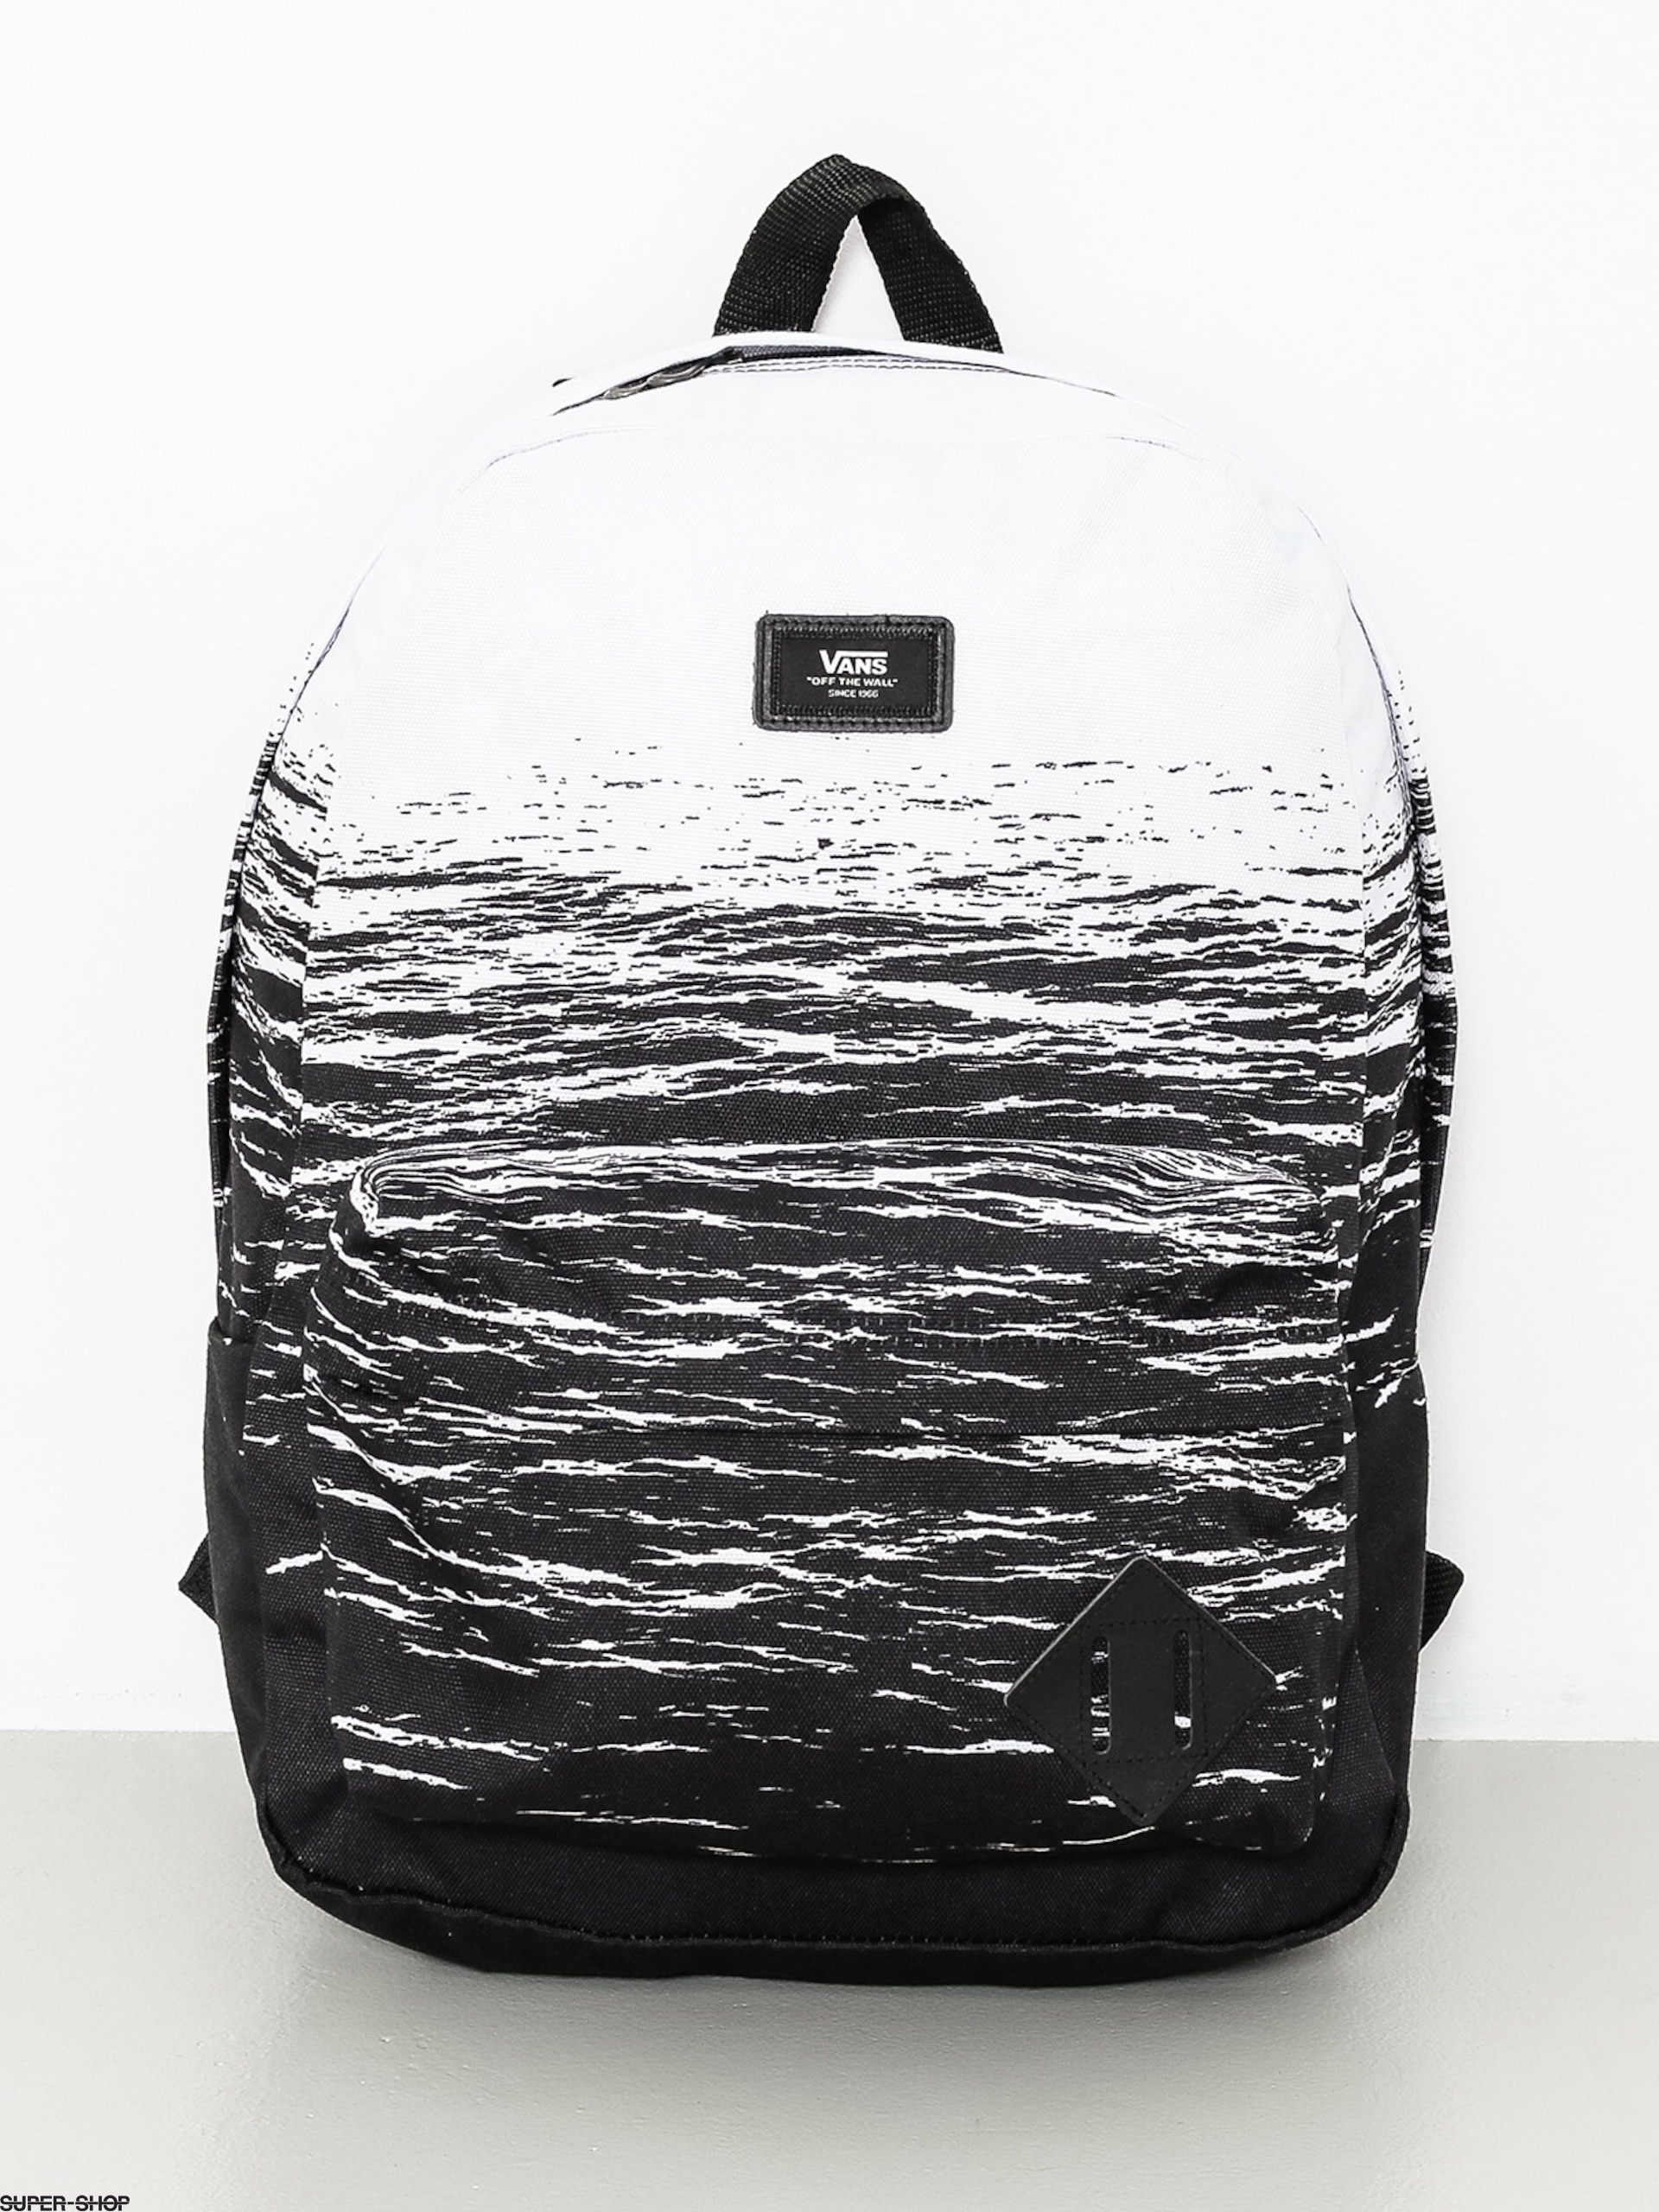 6ca5103ba0 936759-w1920-vans-backpack-old-skool-ii-white-dark-water.jpg